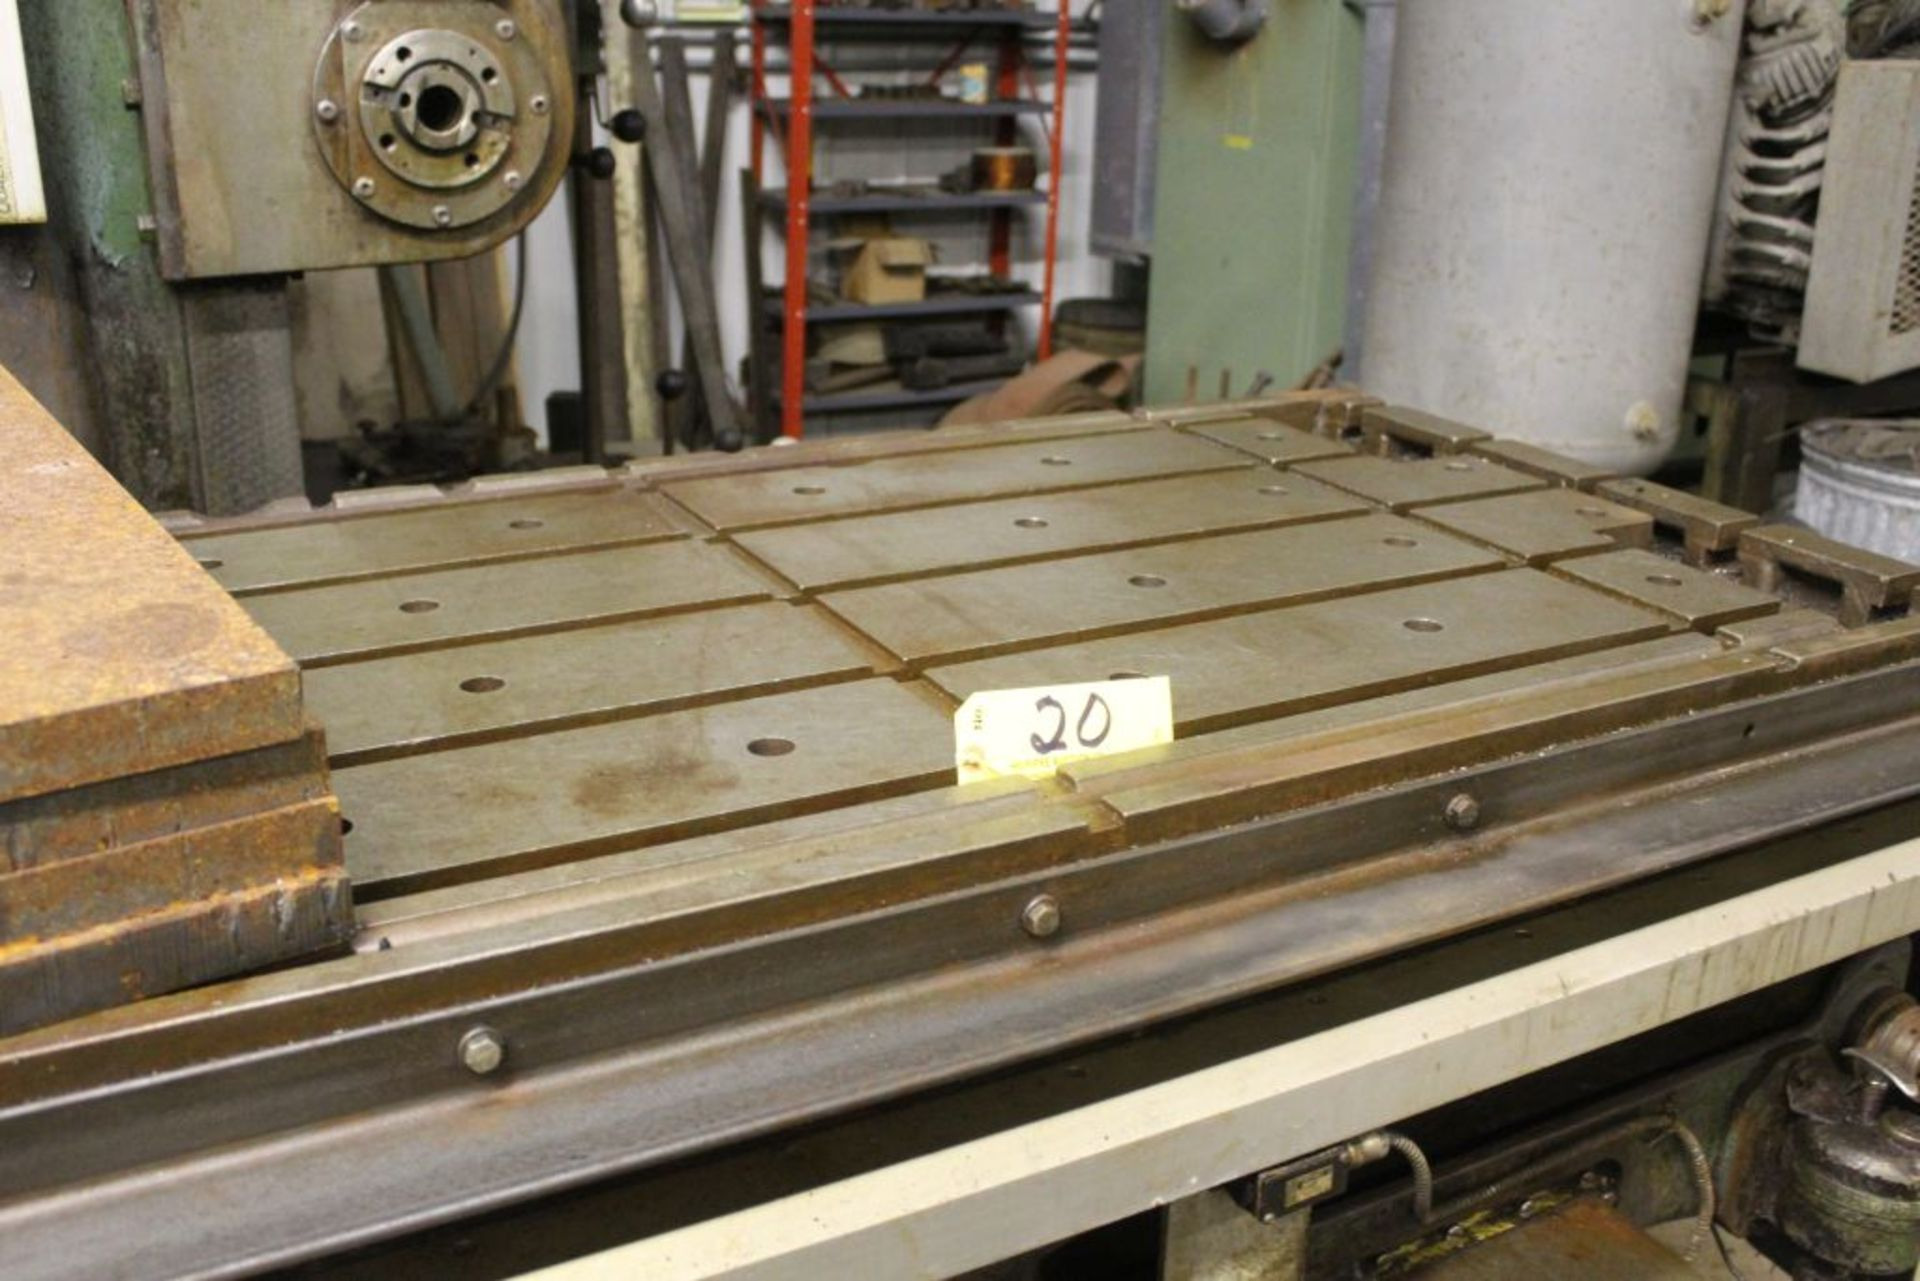 """Giddings & Lewis boring mill, No 30, 30"""" x 62"""" bed, 55"""" height adjustment, 13"""", EG&G digital read - Image 4 of 13"""